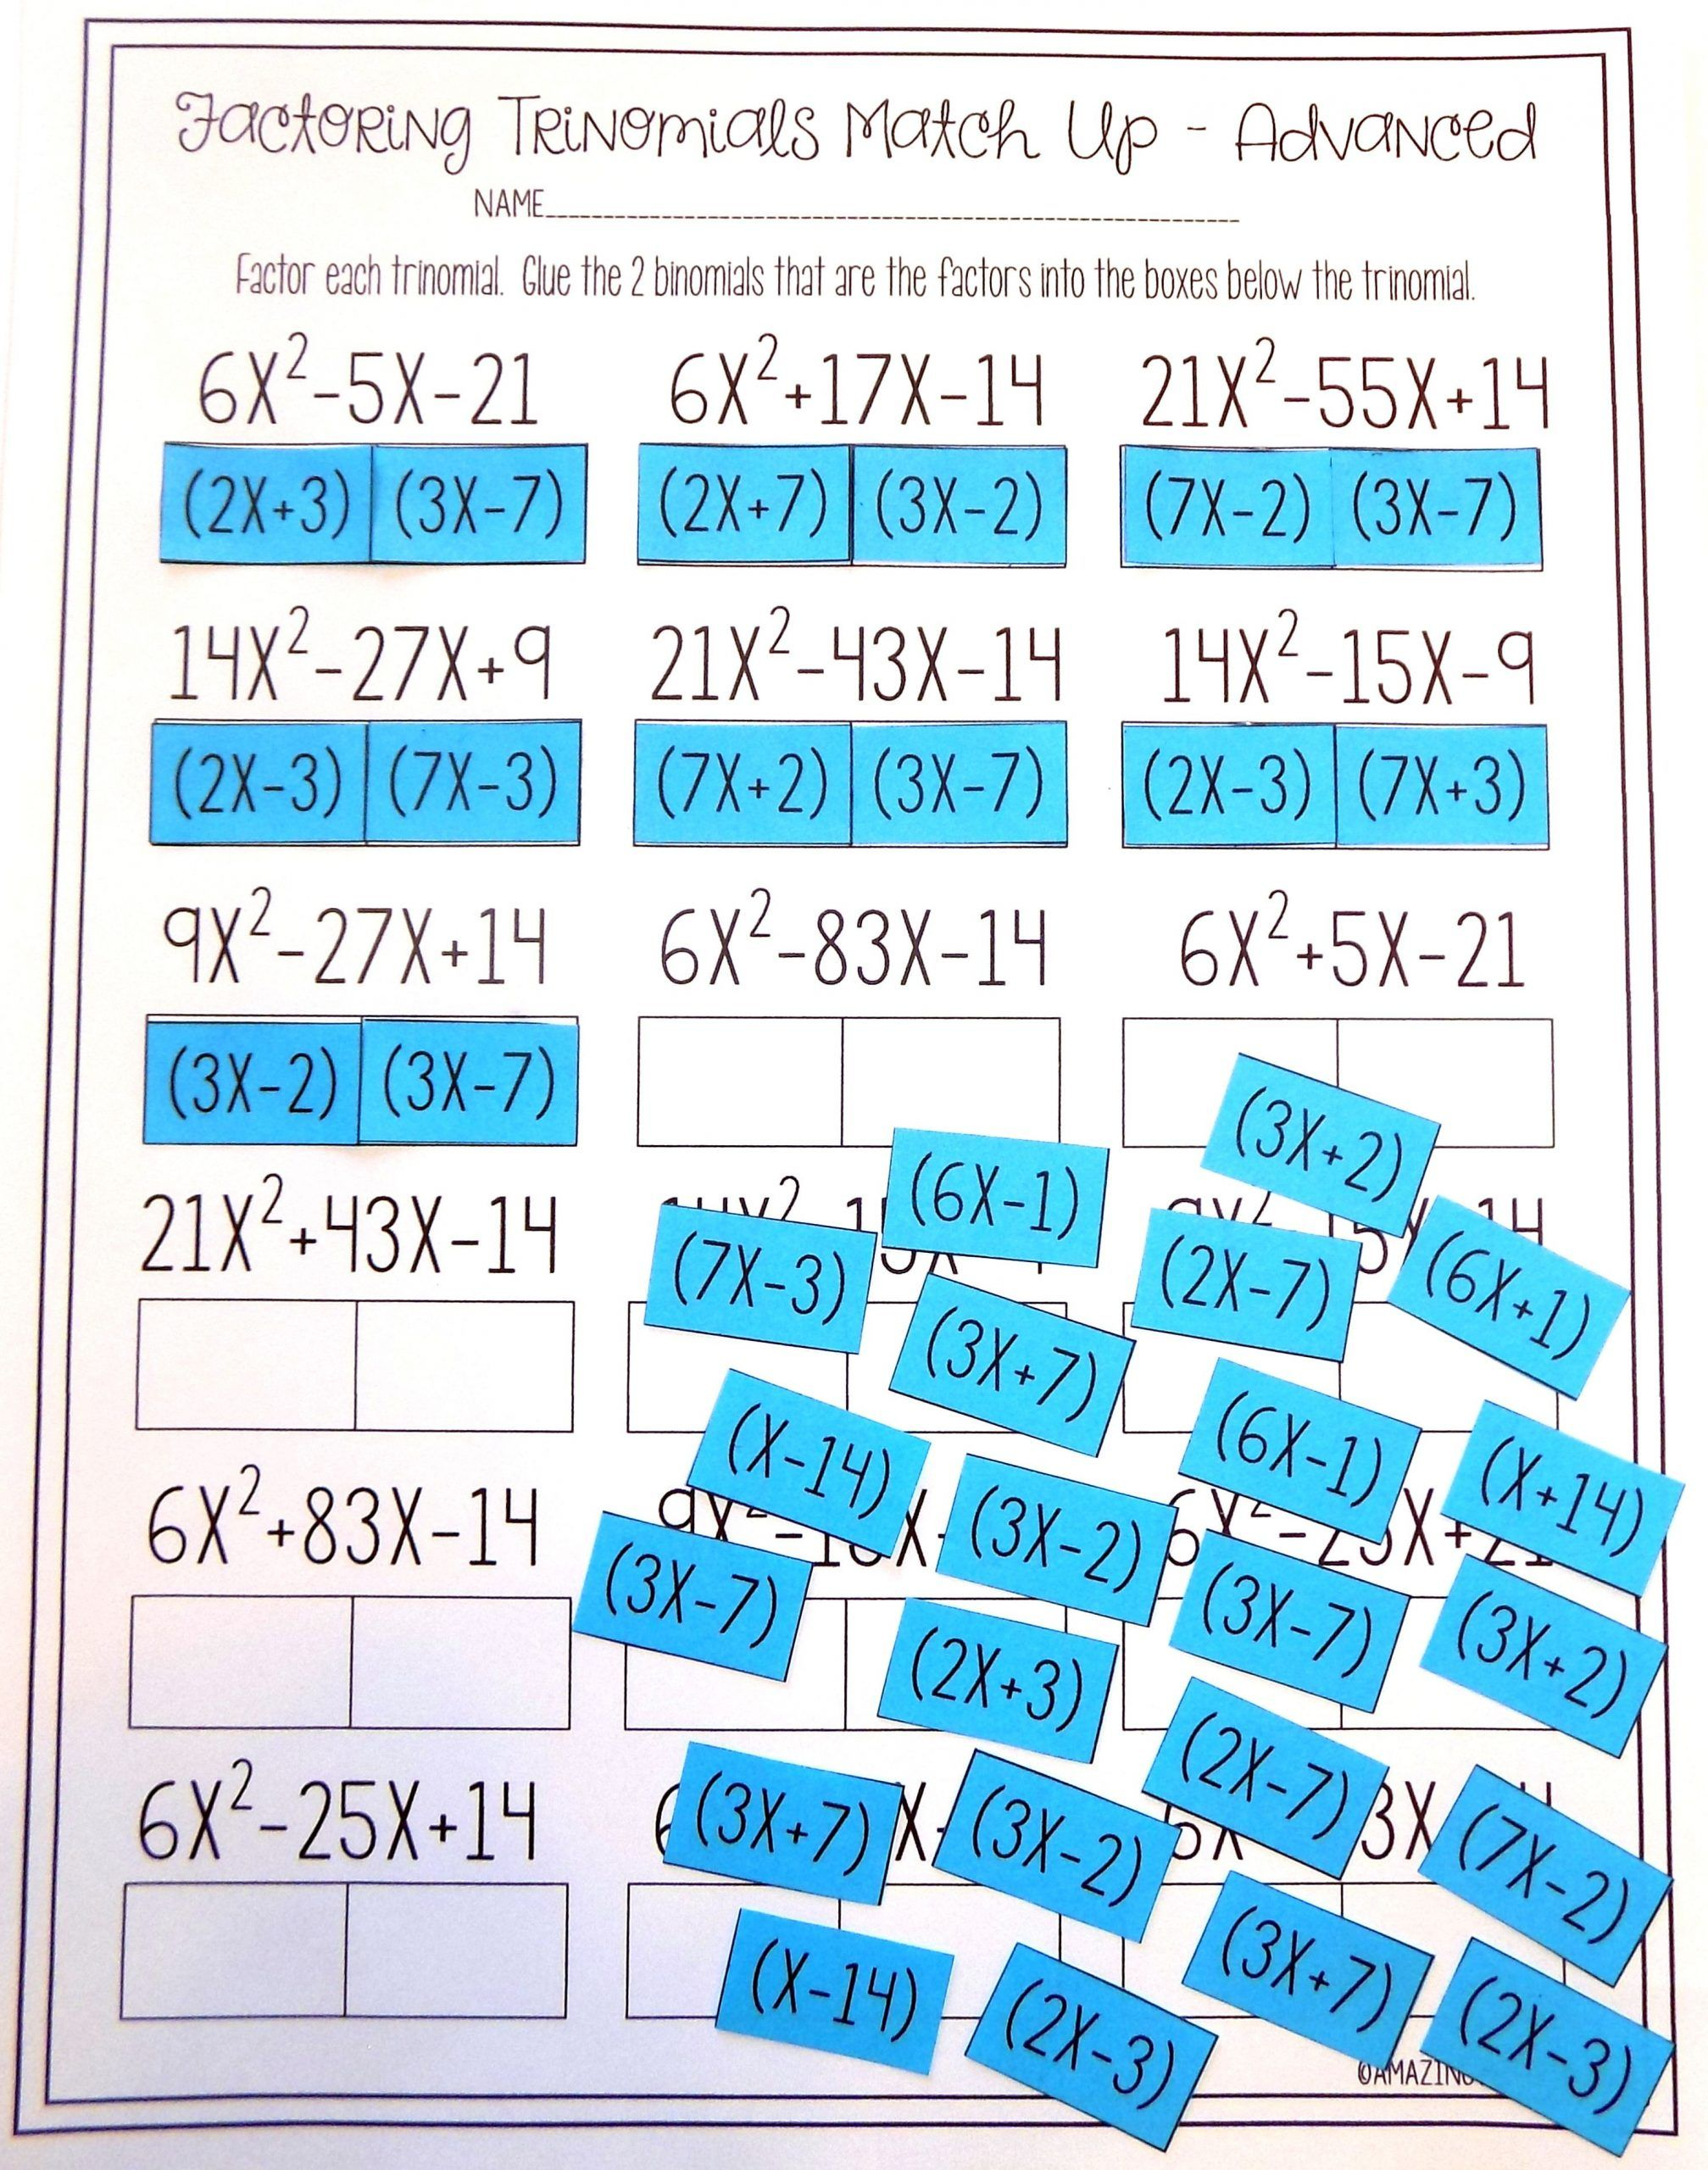 Factoring Trinomials Worksheet Answers Factoring Polynomials Trinomials Activity Advanced In 2020 Factoring Polynomials Factoring Trinomials Activity Polynomials